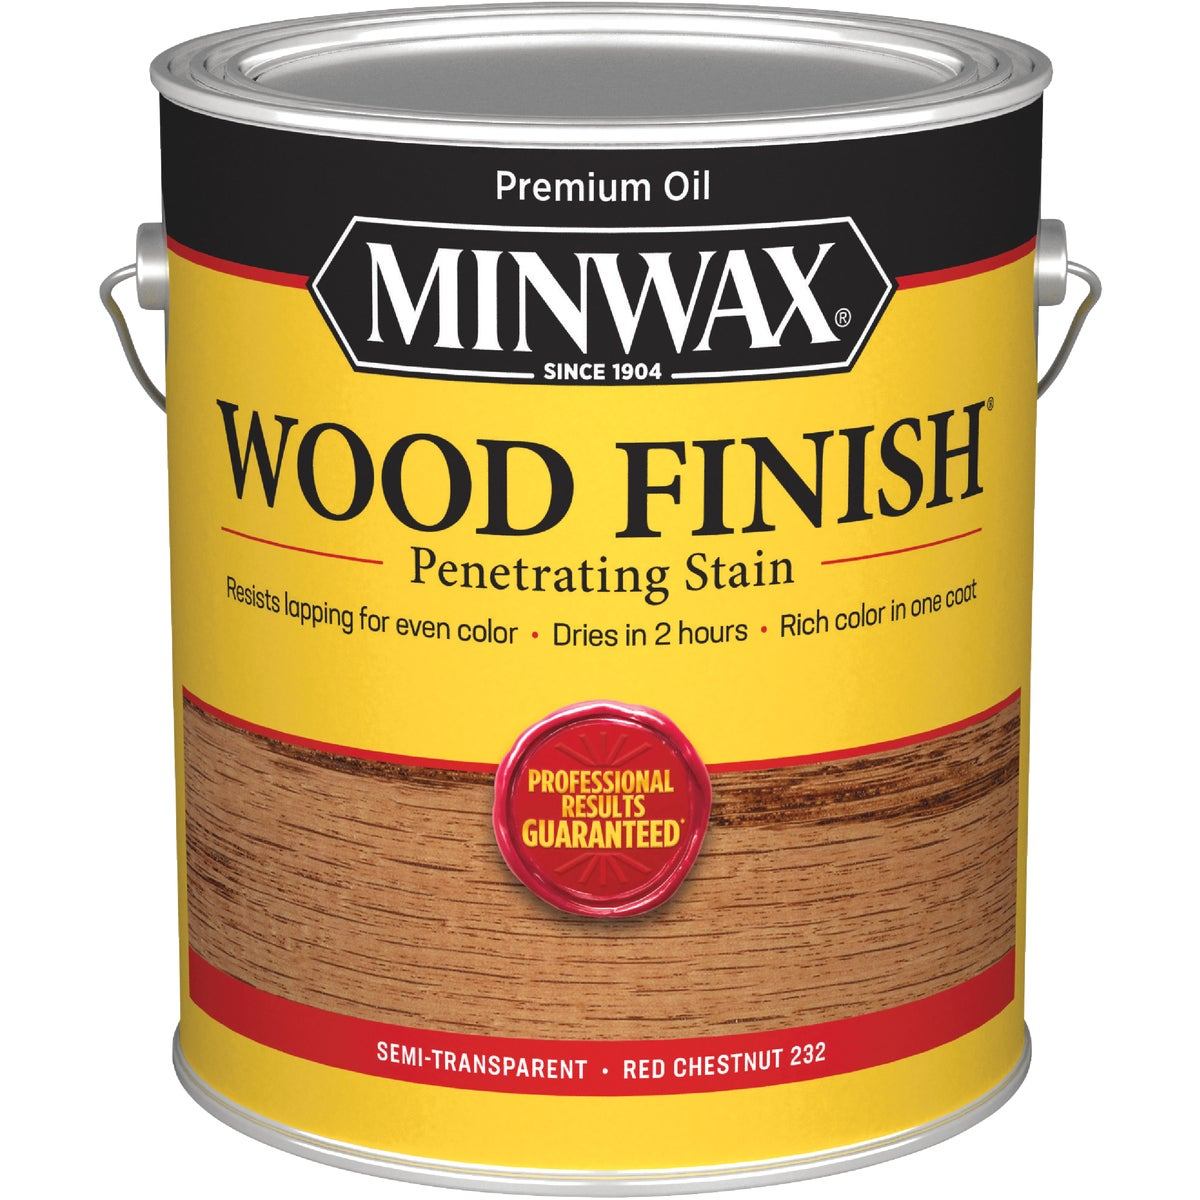 RED CHESTNUT WOOD STAIN - 710460000 by Minwax Company